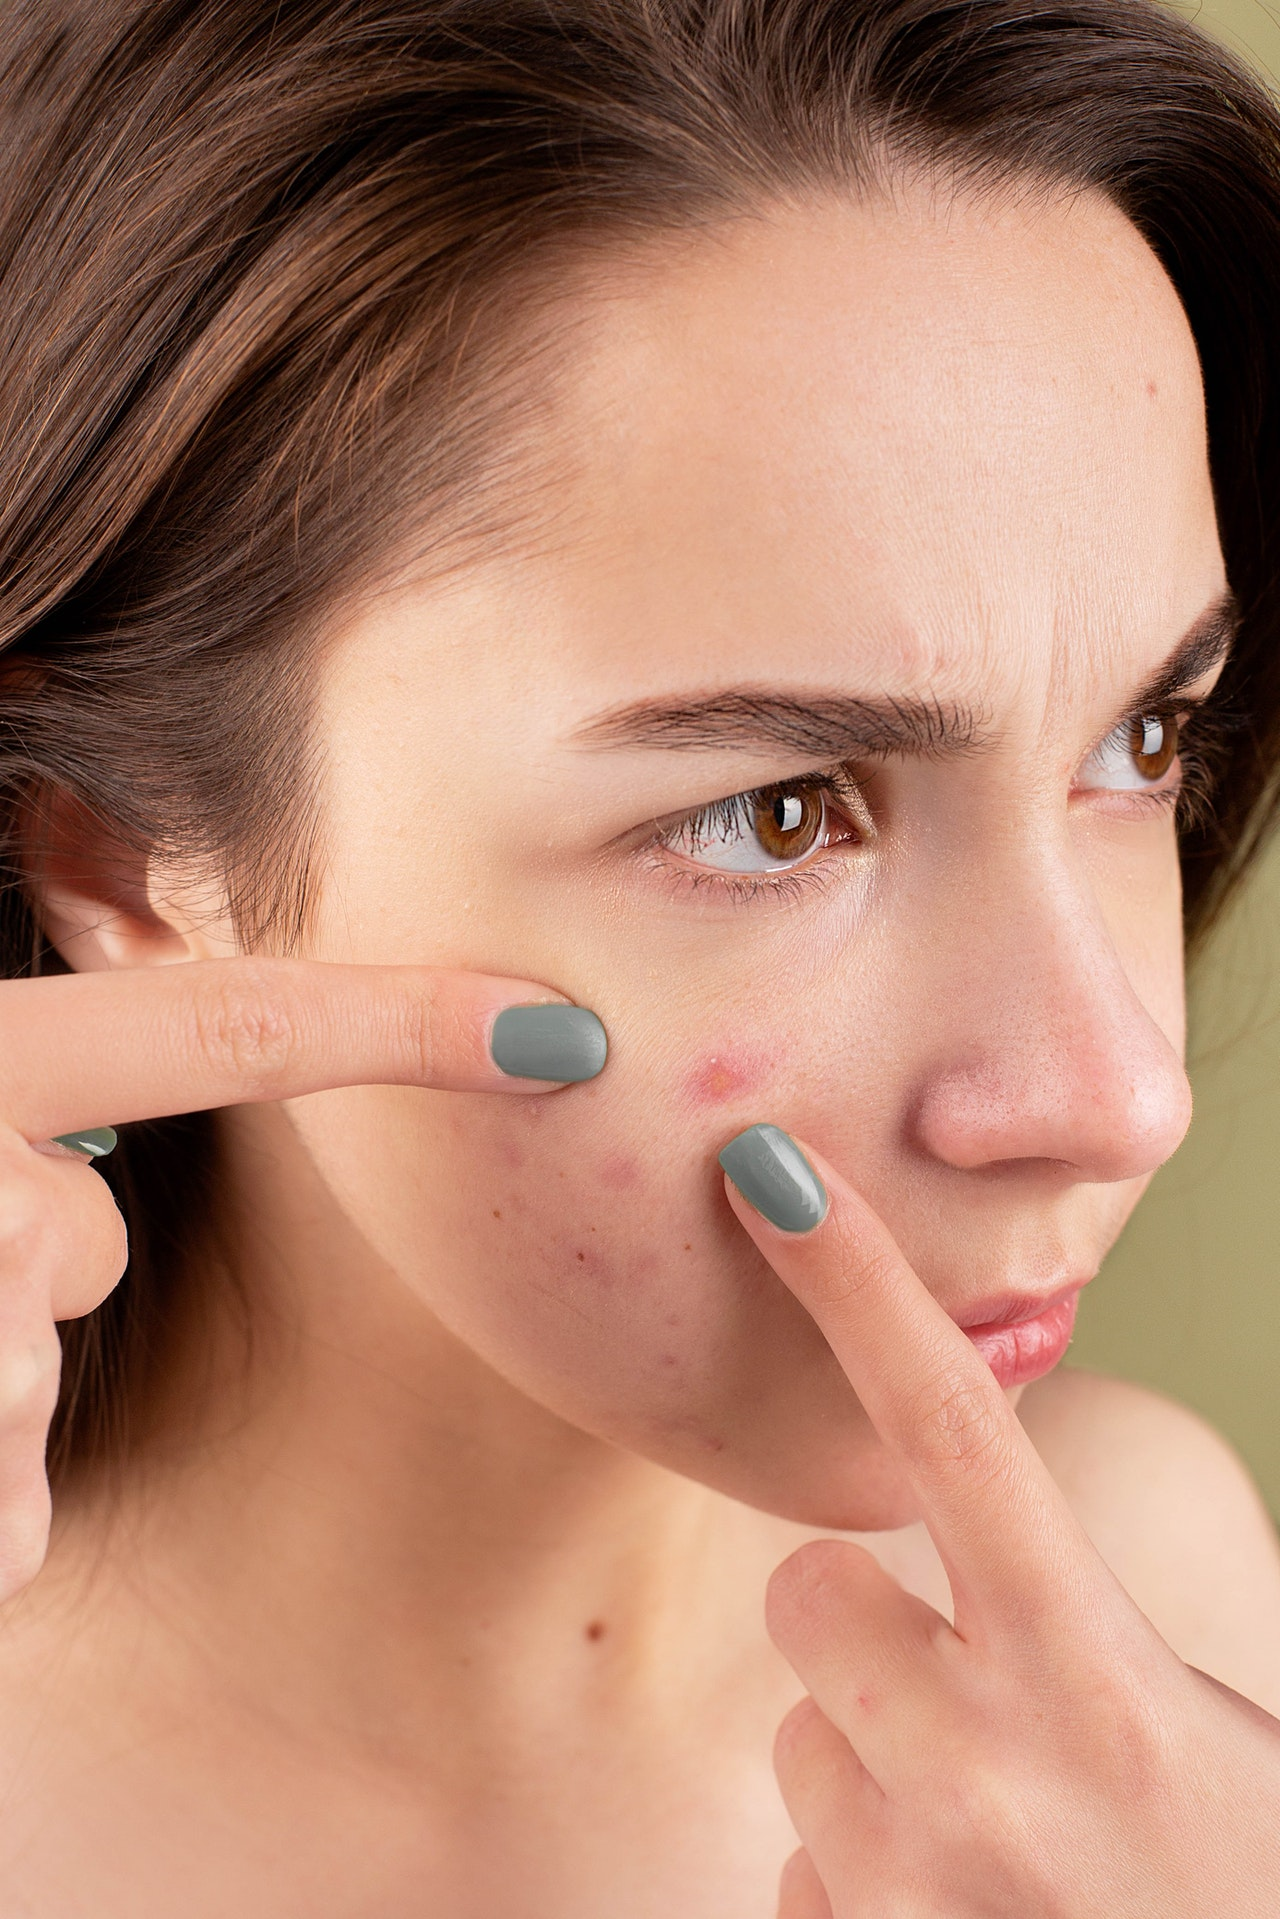 the difference between juvederm and botox